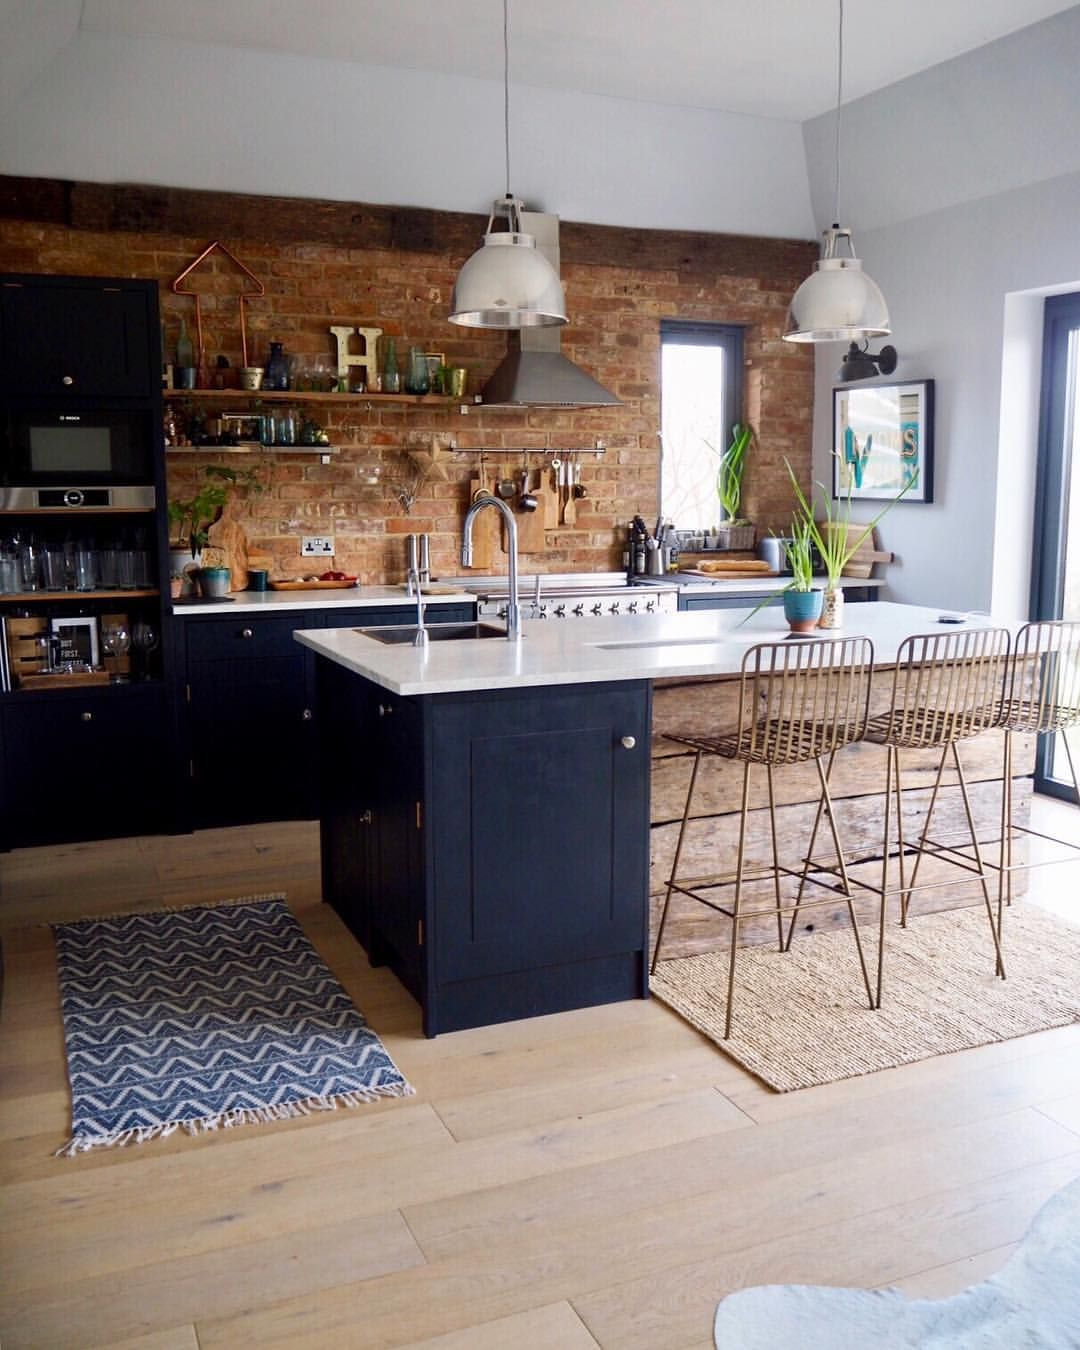 Brick Accent Wall Kitchen: Kitchens.... My Head And Pinterest Board Are Full Of Them